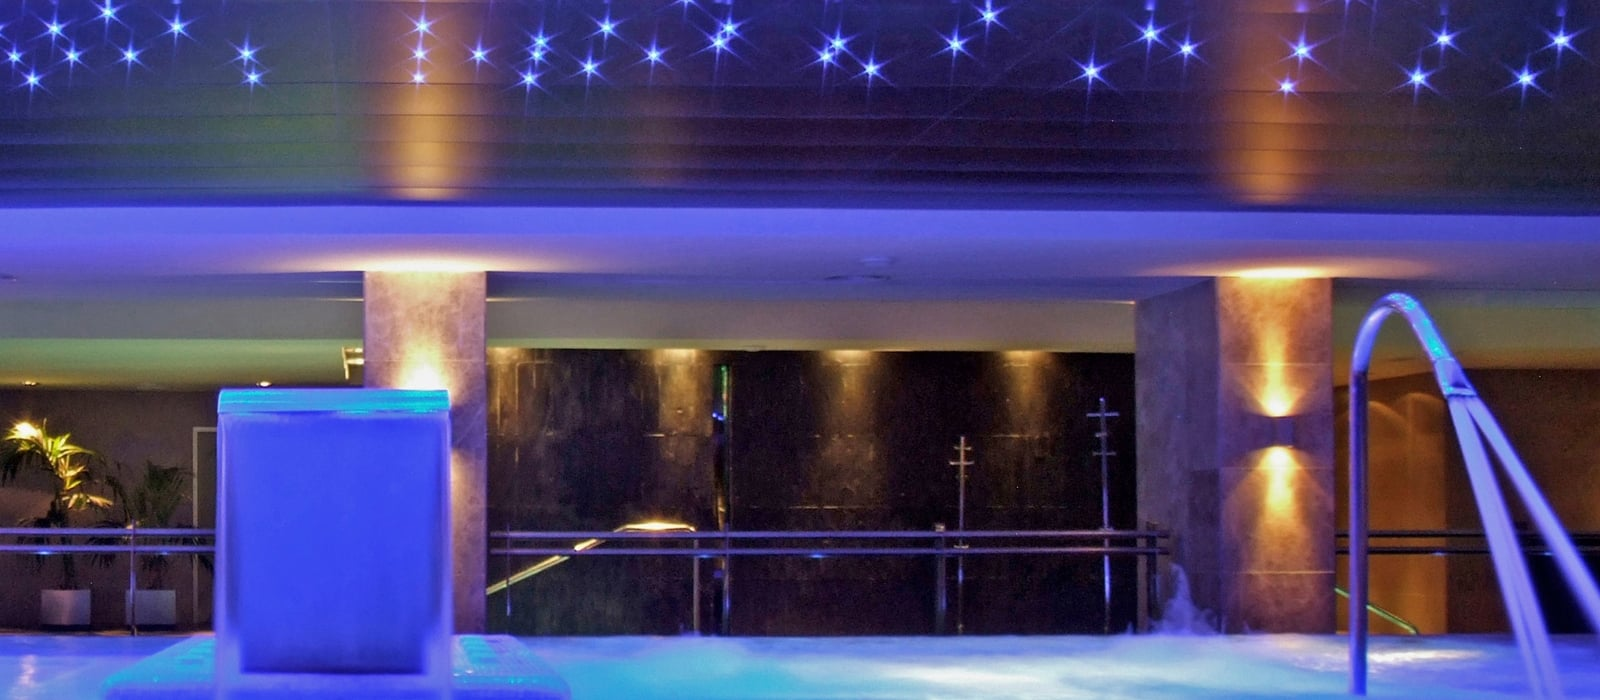 Spa Hotel Vincci Almería Wellness - Water circuit and baths